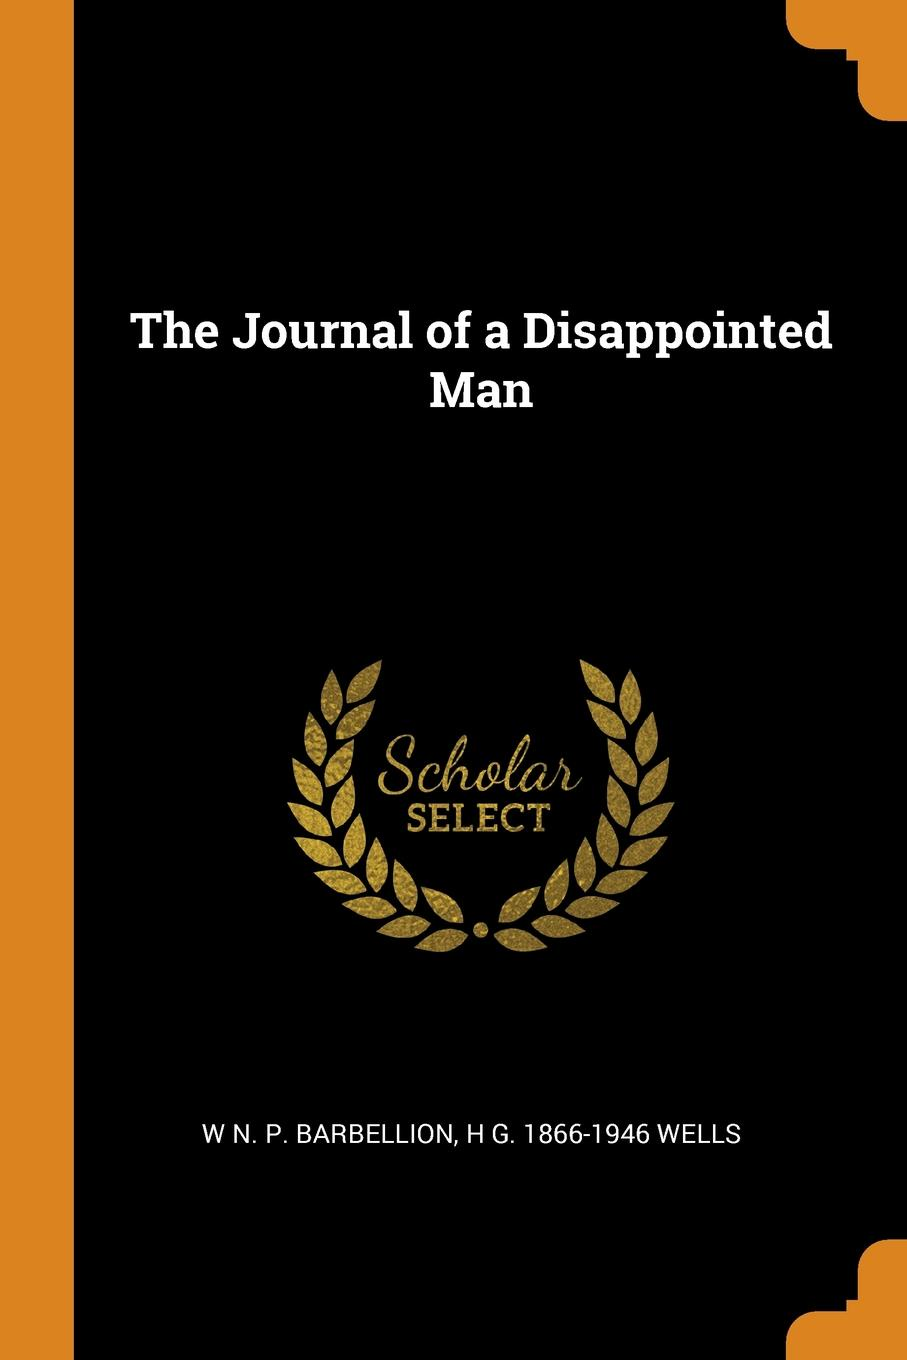 W N. P. Barbellion, H G. 1866-1946 Wells The Journal of a Disappointed Man w n p barbellion the journal of a disappointed man